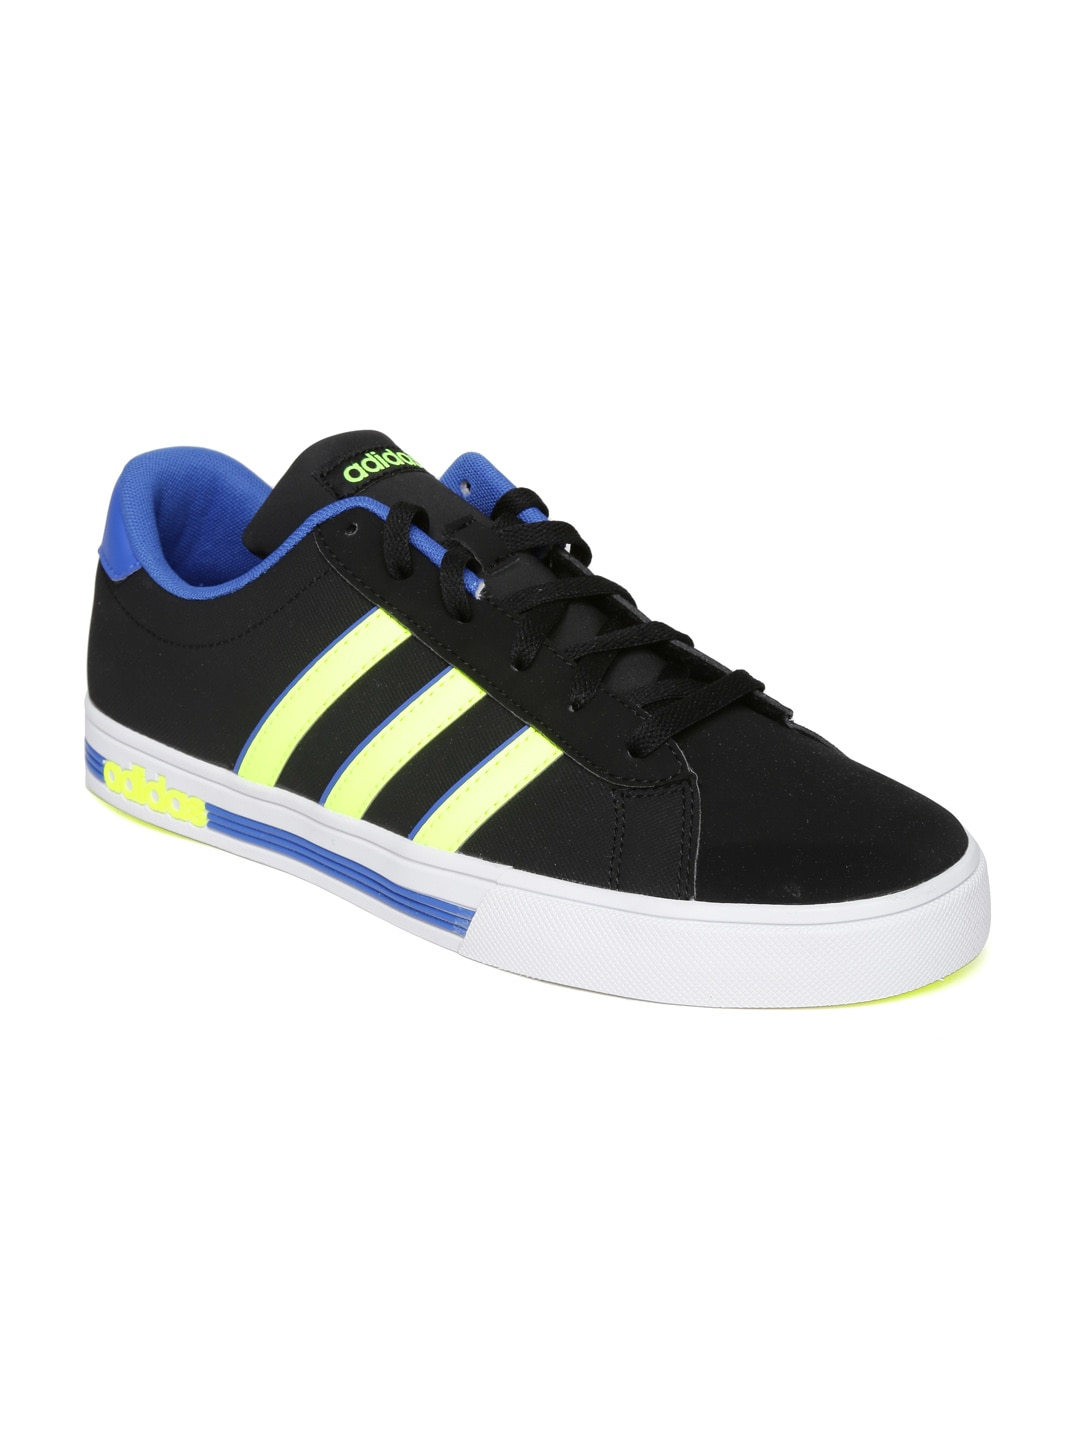 adidas neo se daily team sneaker